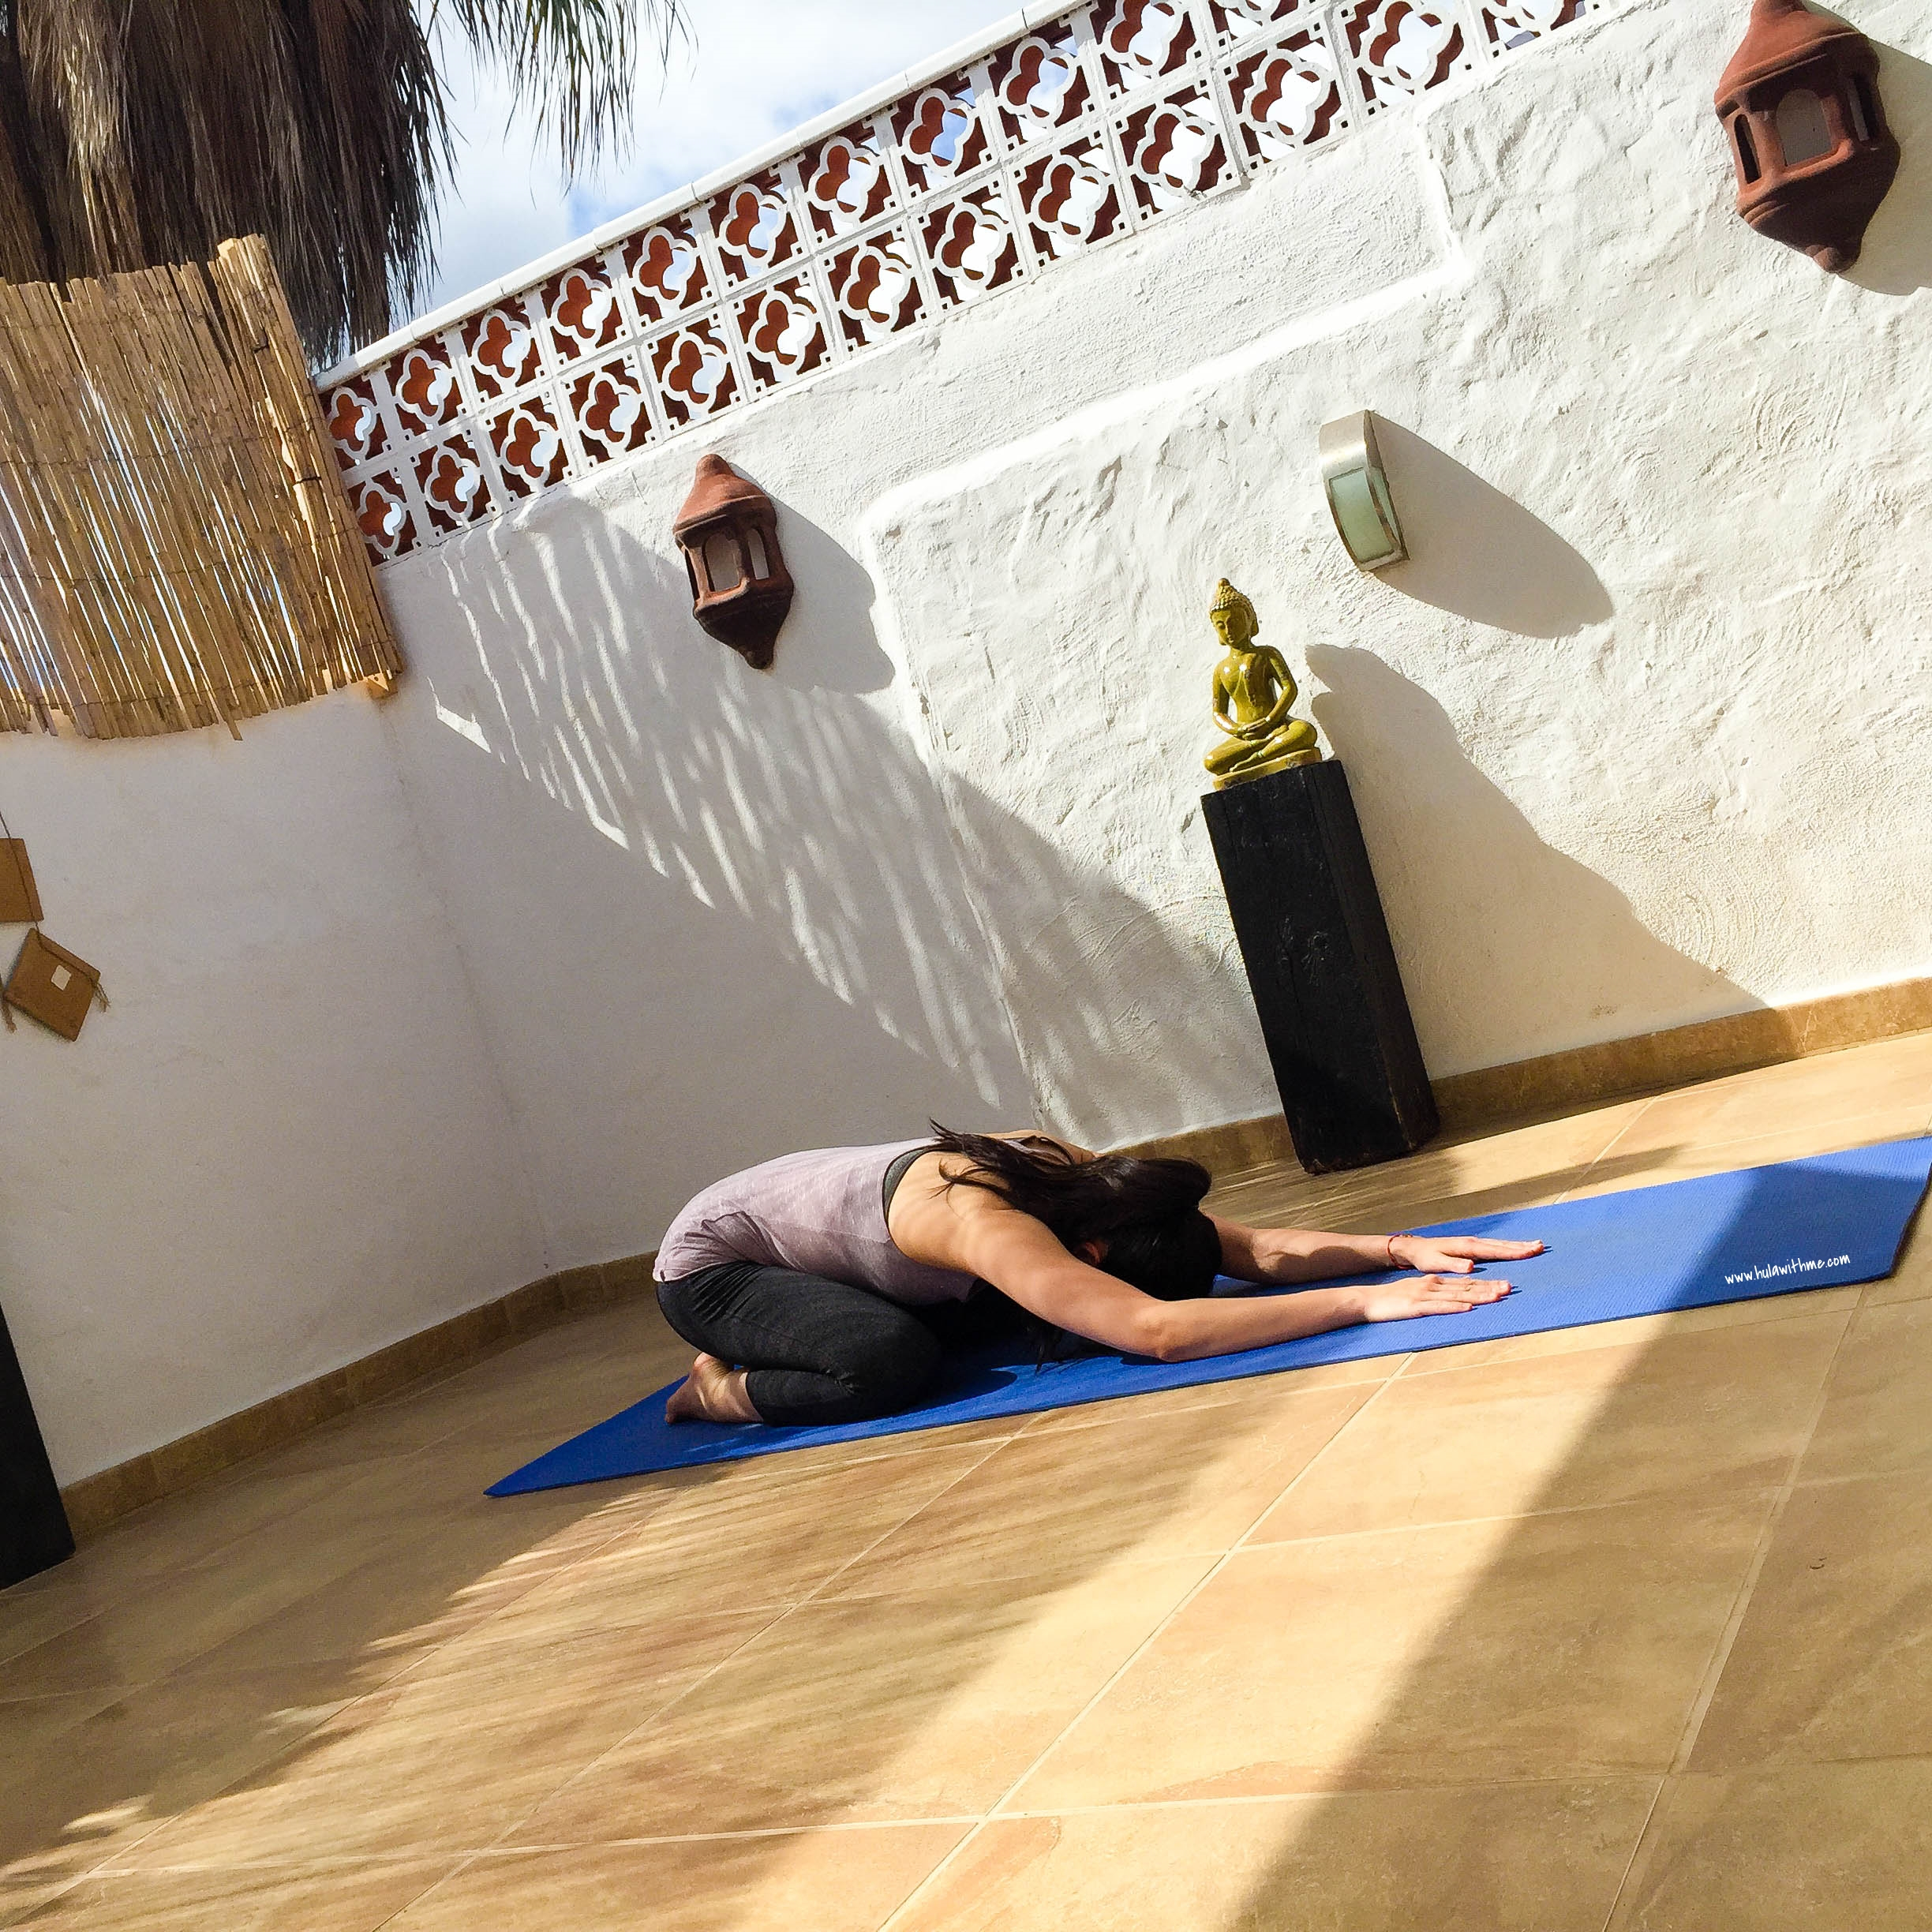 Yoga retreat on Fuerteventura, The Canary Islands